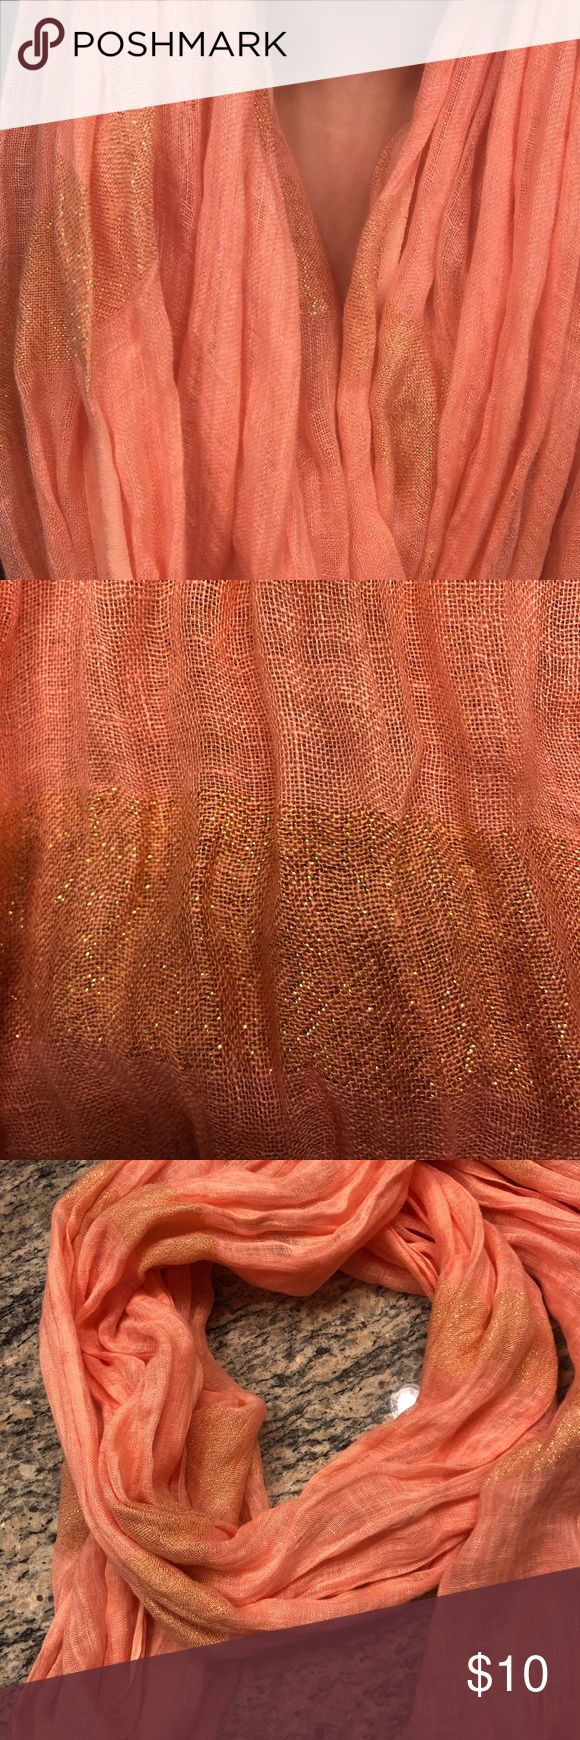 Coral scarf Coral and shimmer Eileen Fisher Accessories Scarves & Wraps